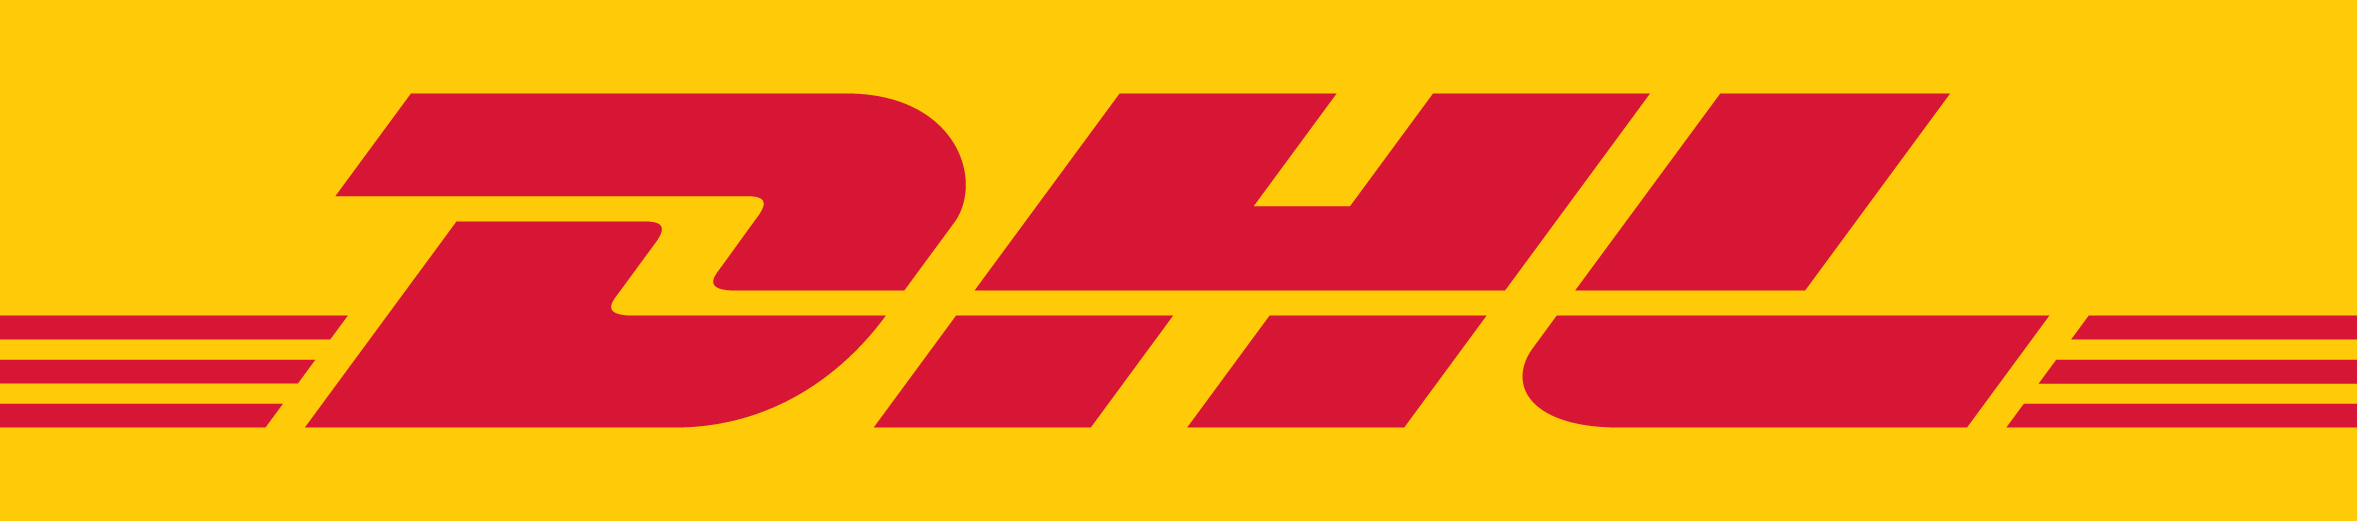 Dhl Icons No Attribution image #21197